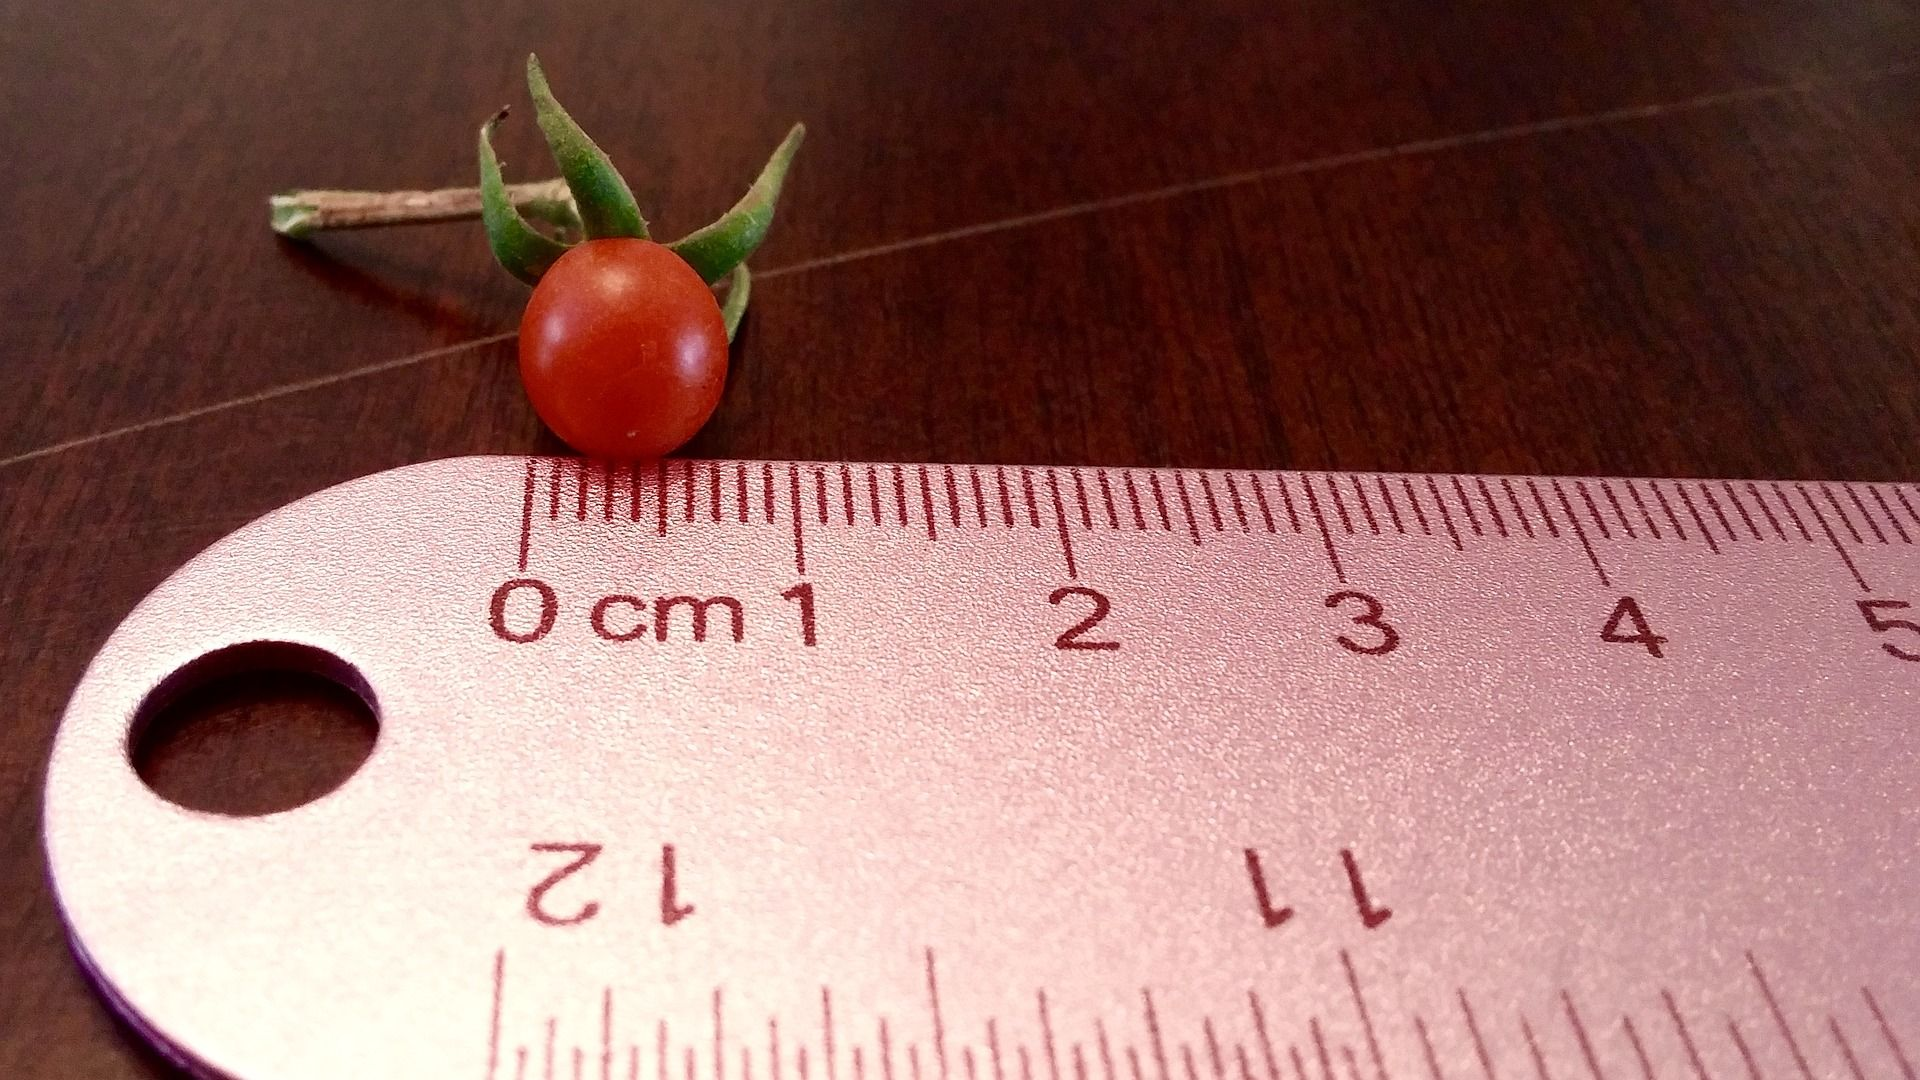 Tomato and a ruler